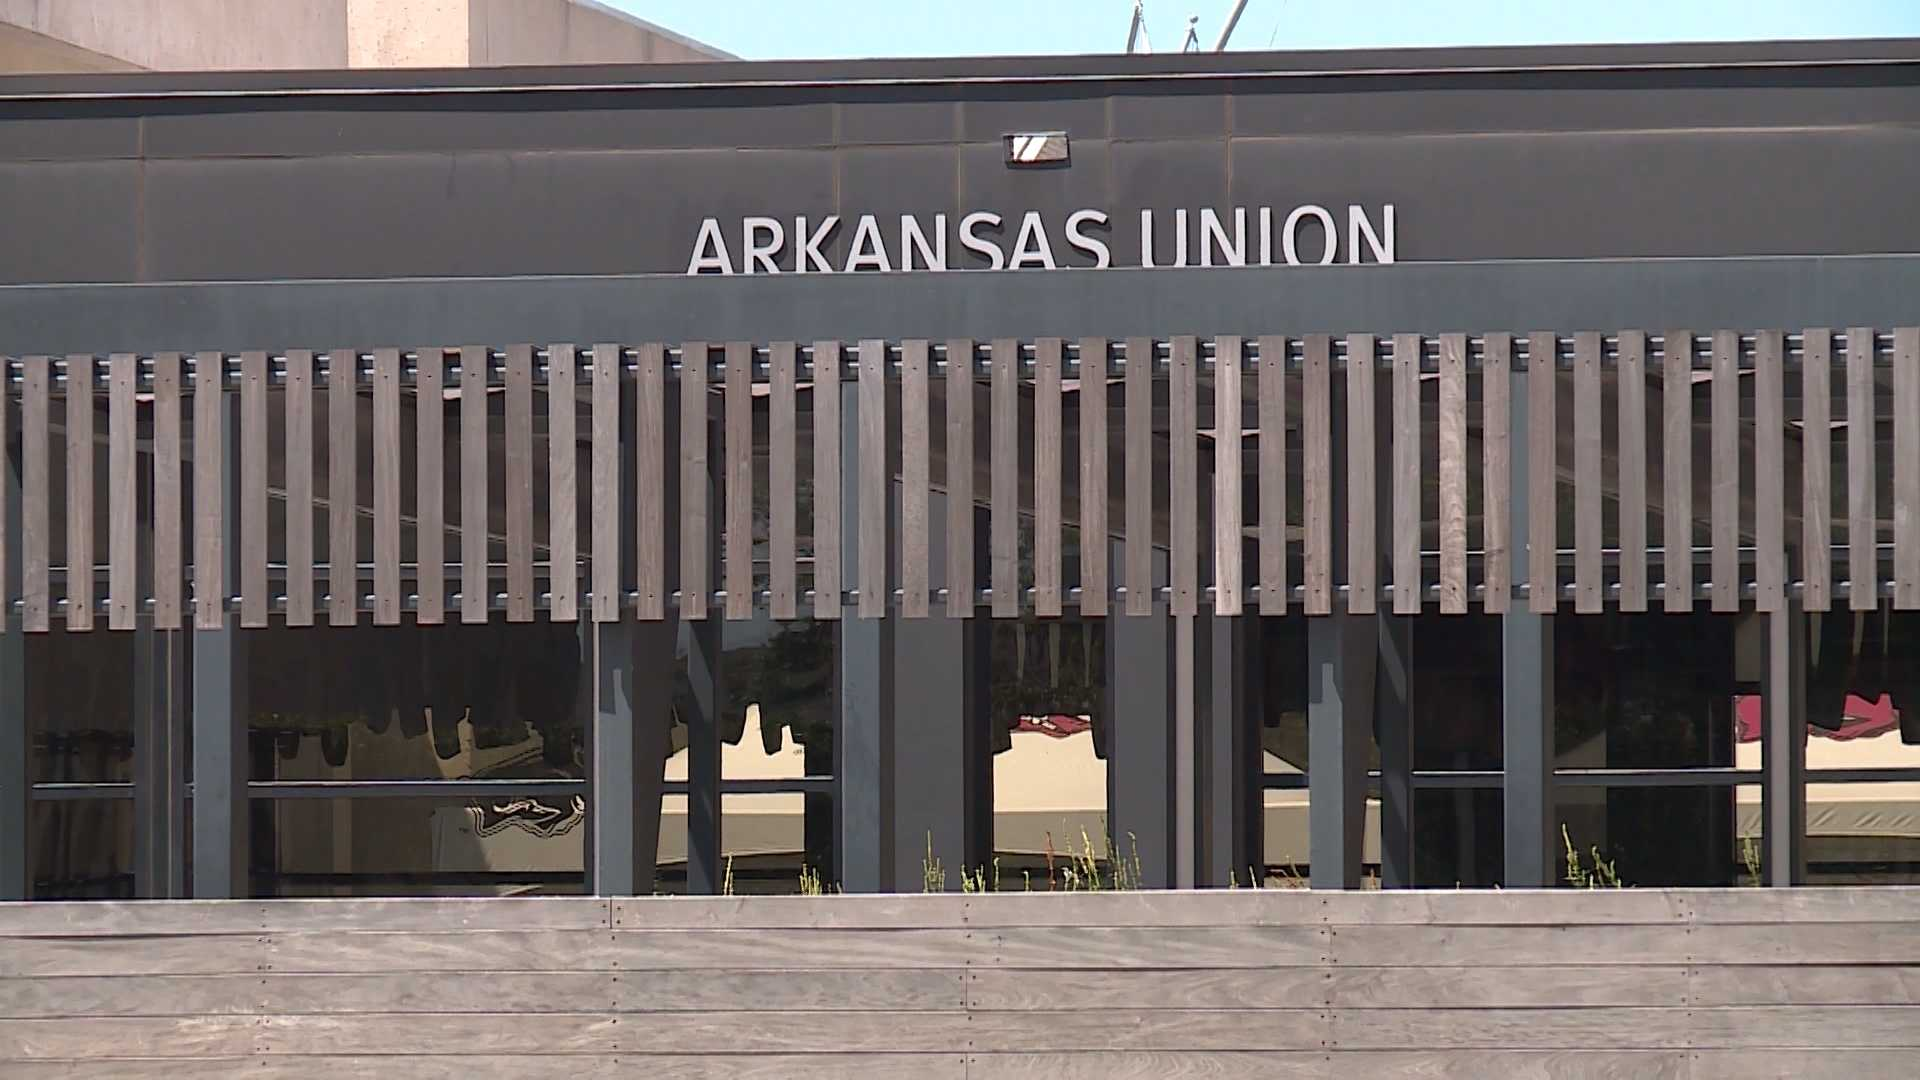 University of Arkansas Student Union